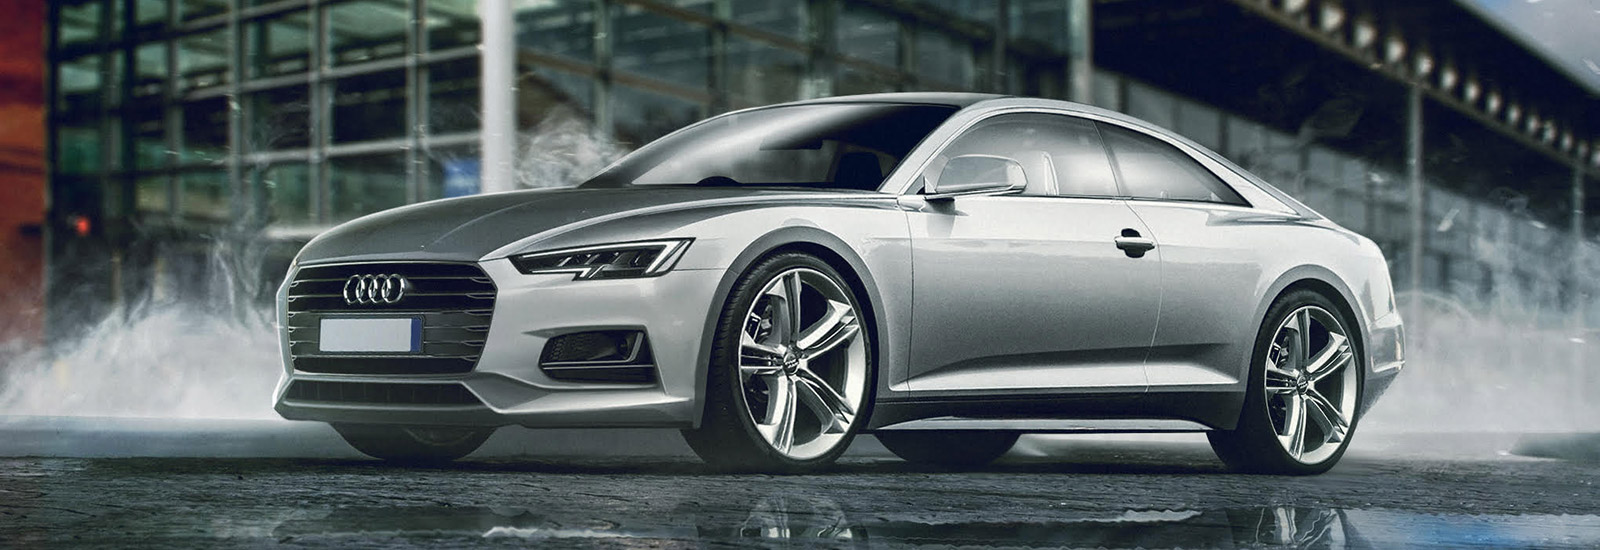 audi a9 2015. the new a9u0027s styling will be inspired by elegant prologue concept car not only it boast similarly slinky proportions but could offered as a audi a9 2015